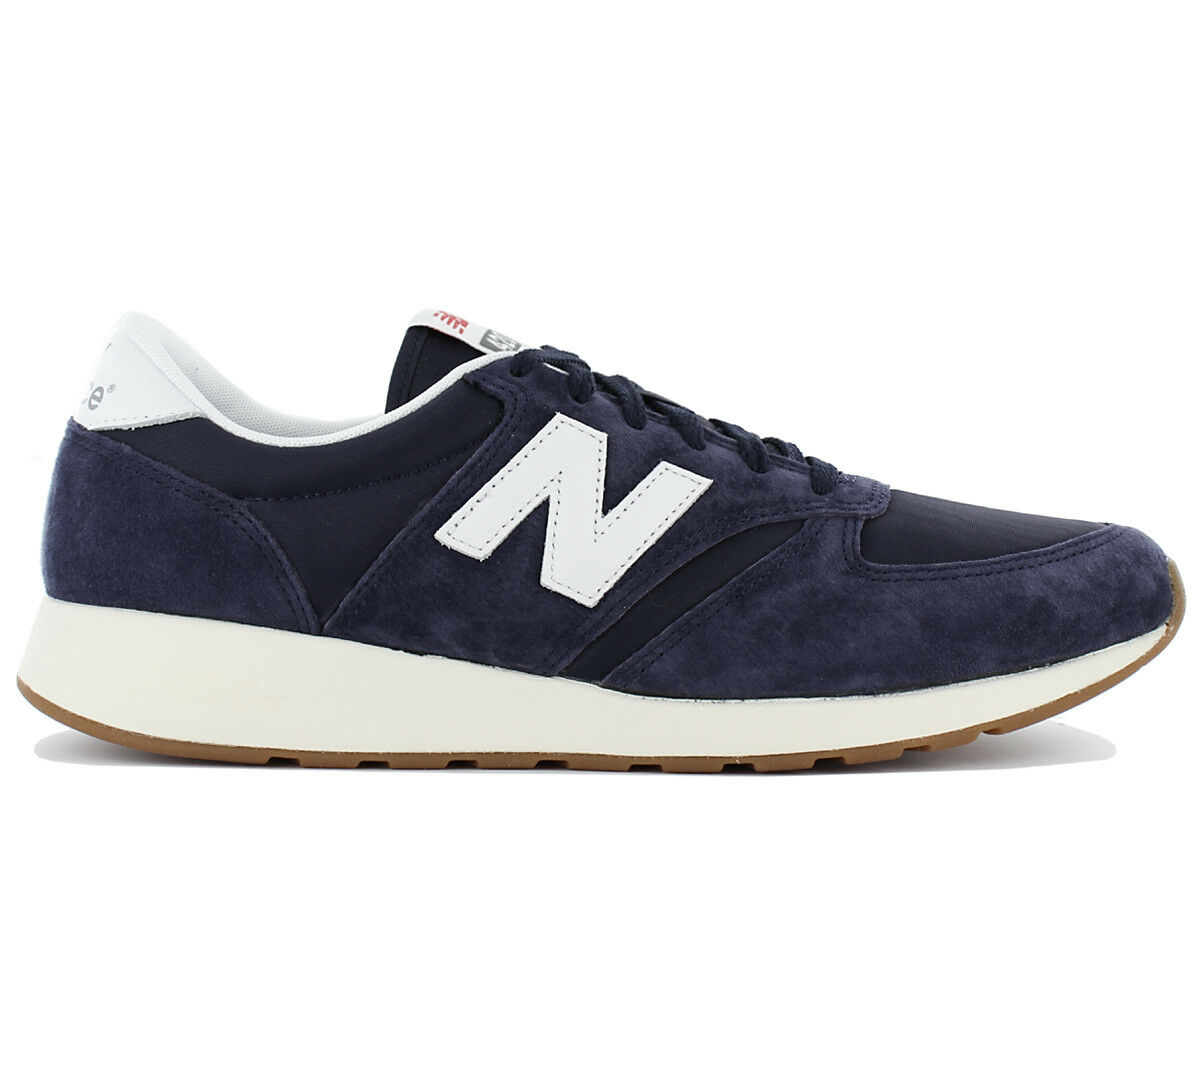 New Balance 420 Sneaker Mens shoes Navy bluee Sneakers Leisure MRL420SQ New